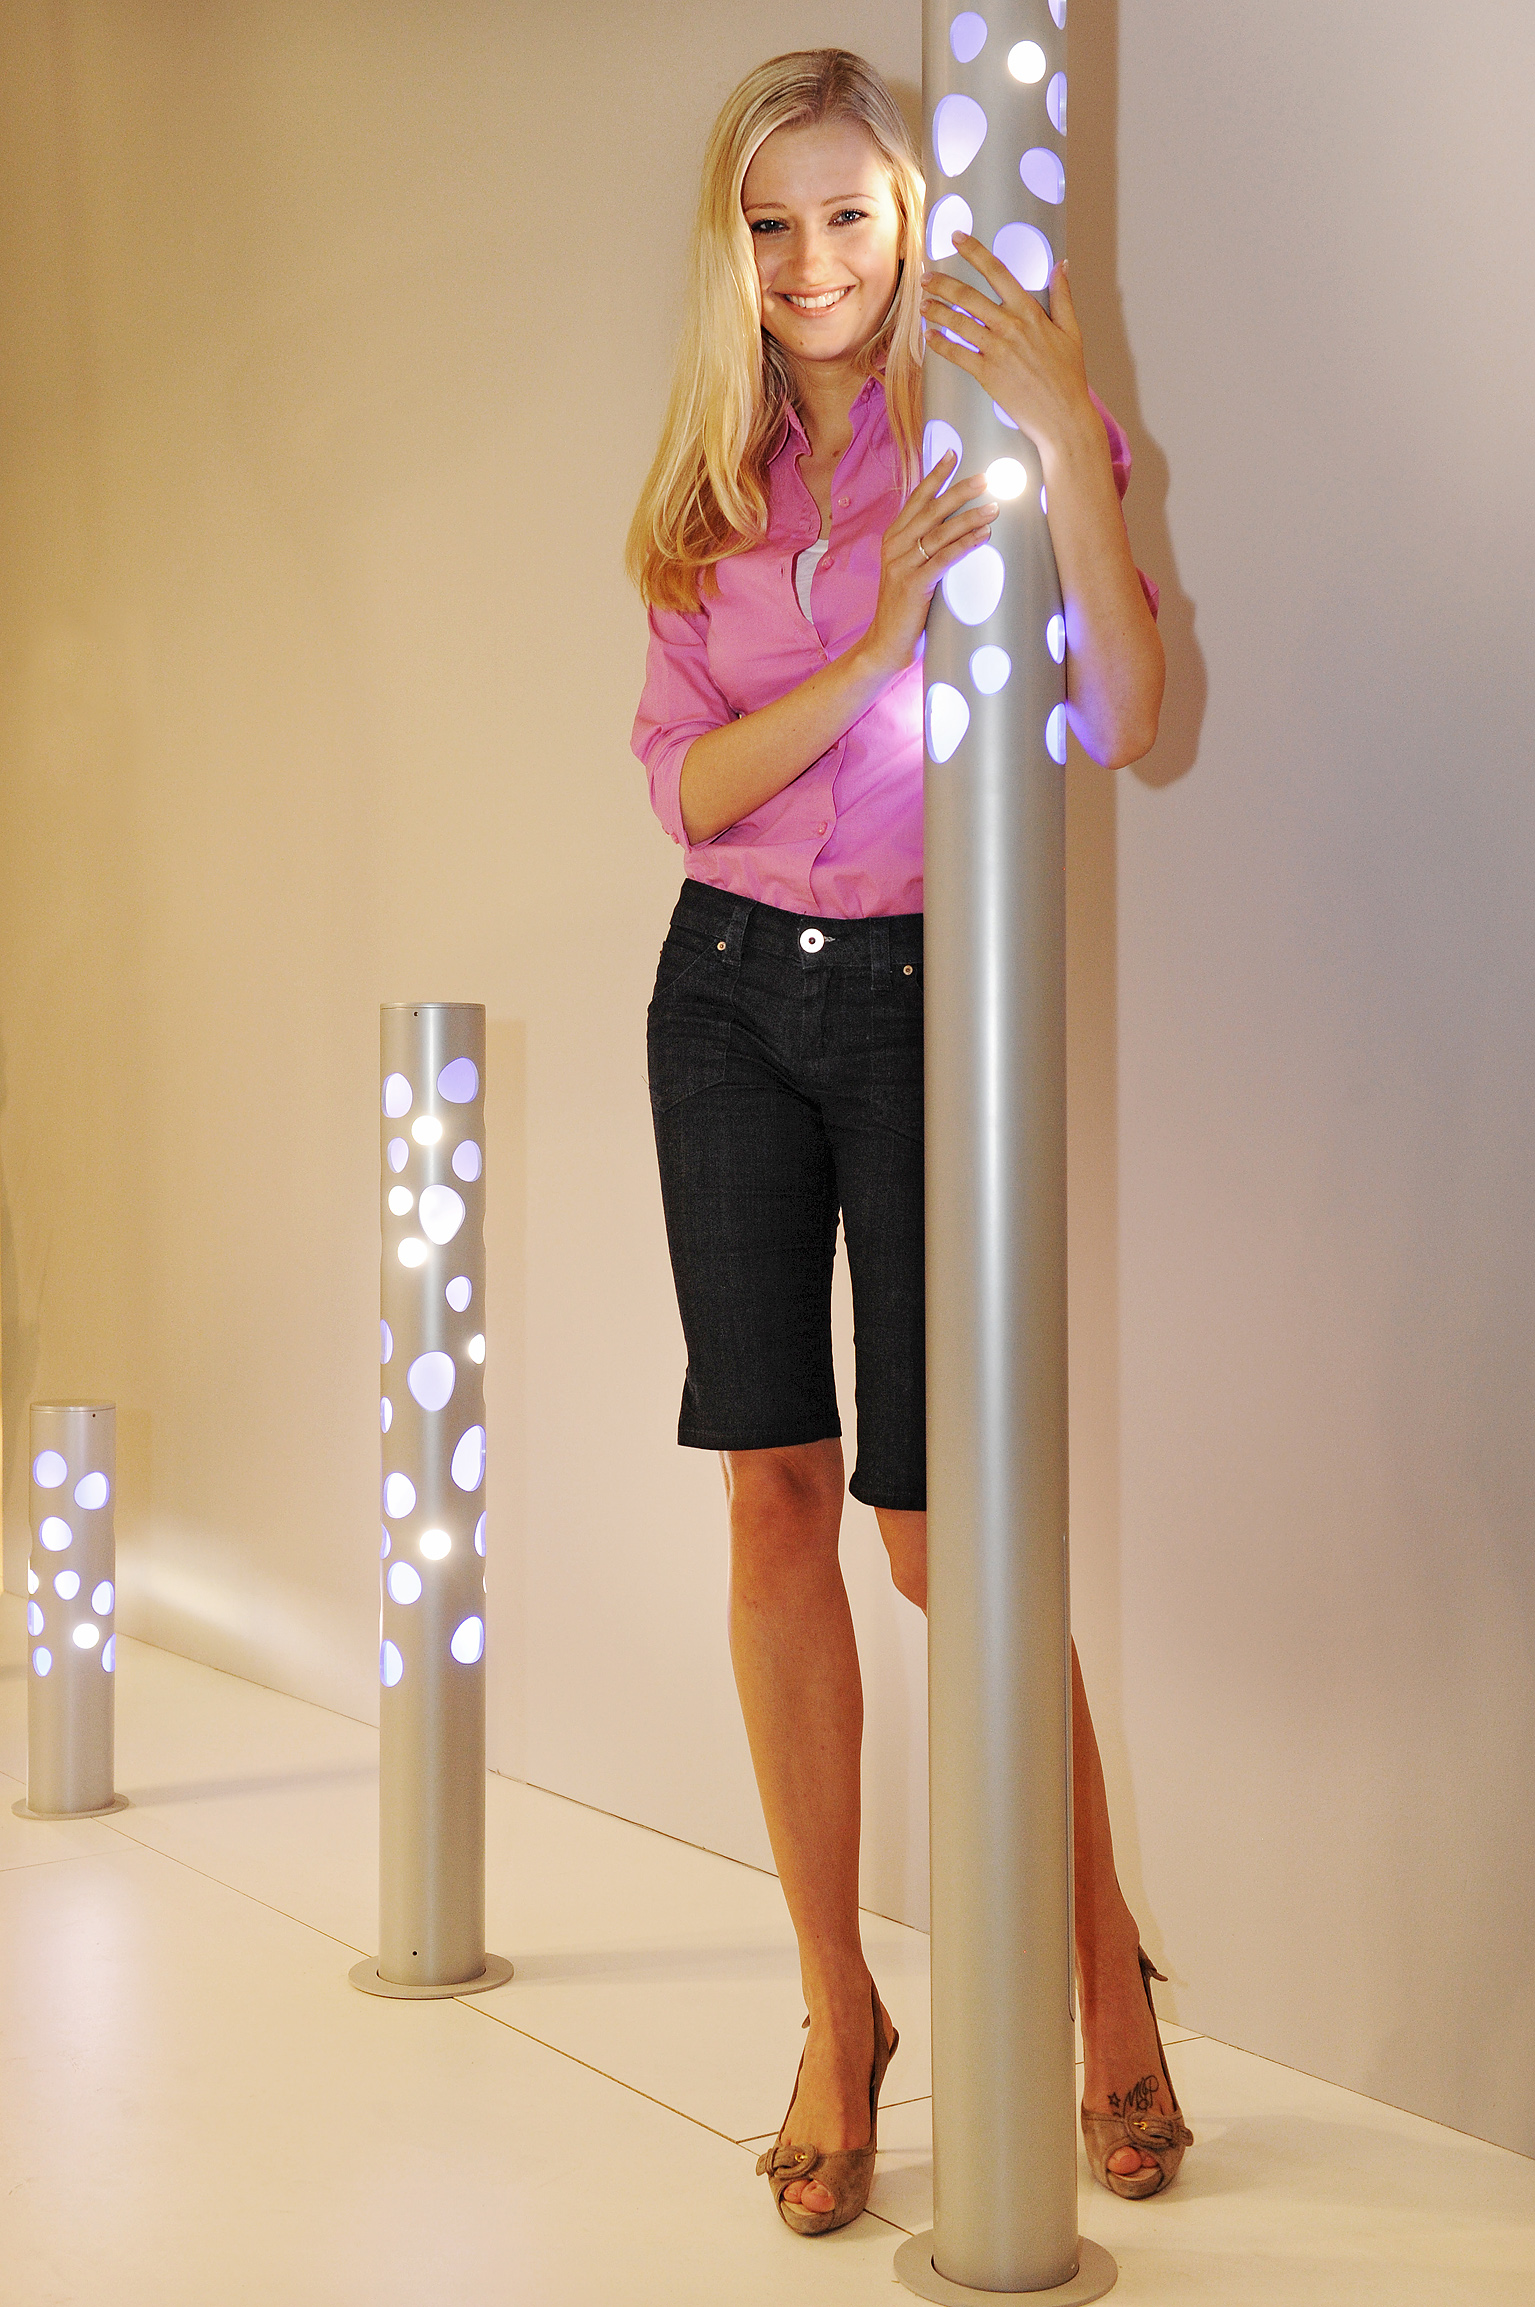 Urban Lighting Featuring External Lights For Public Space